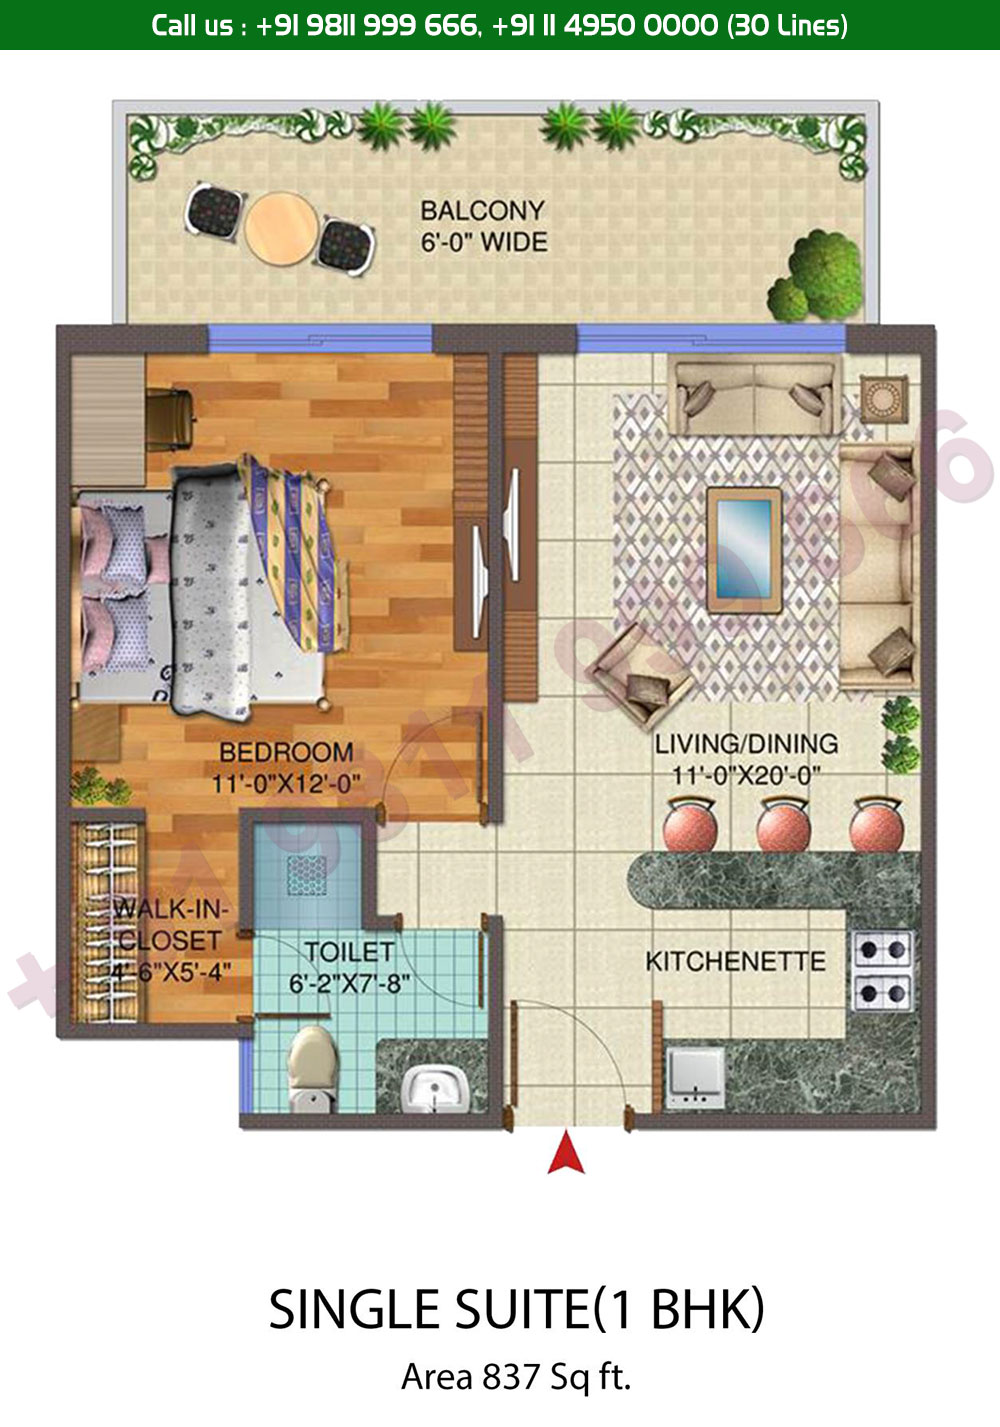 1 BHK Suite: 837 Sq. Ft.